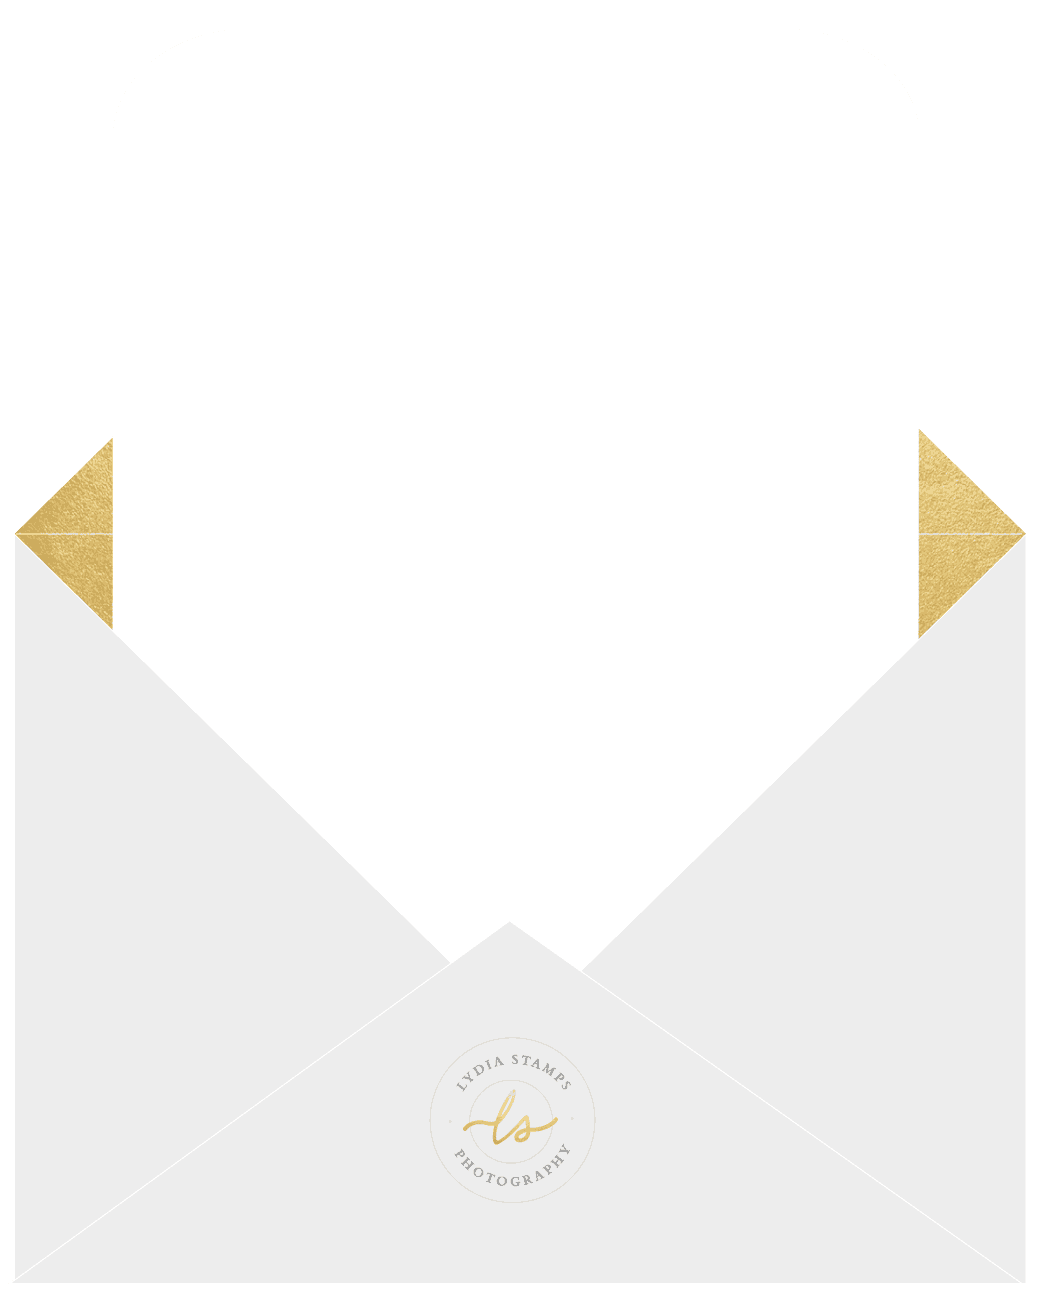 lydia stamps envelope background